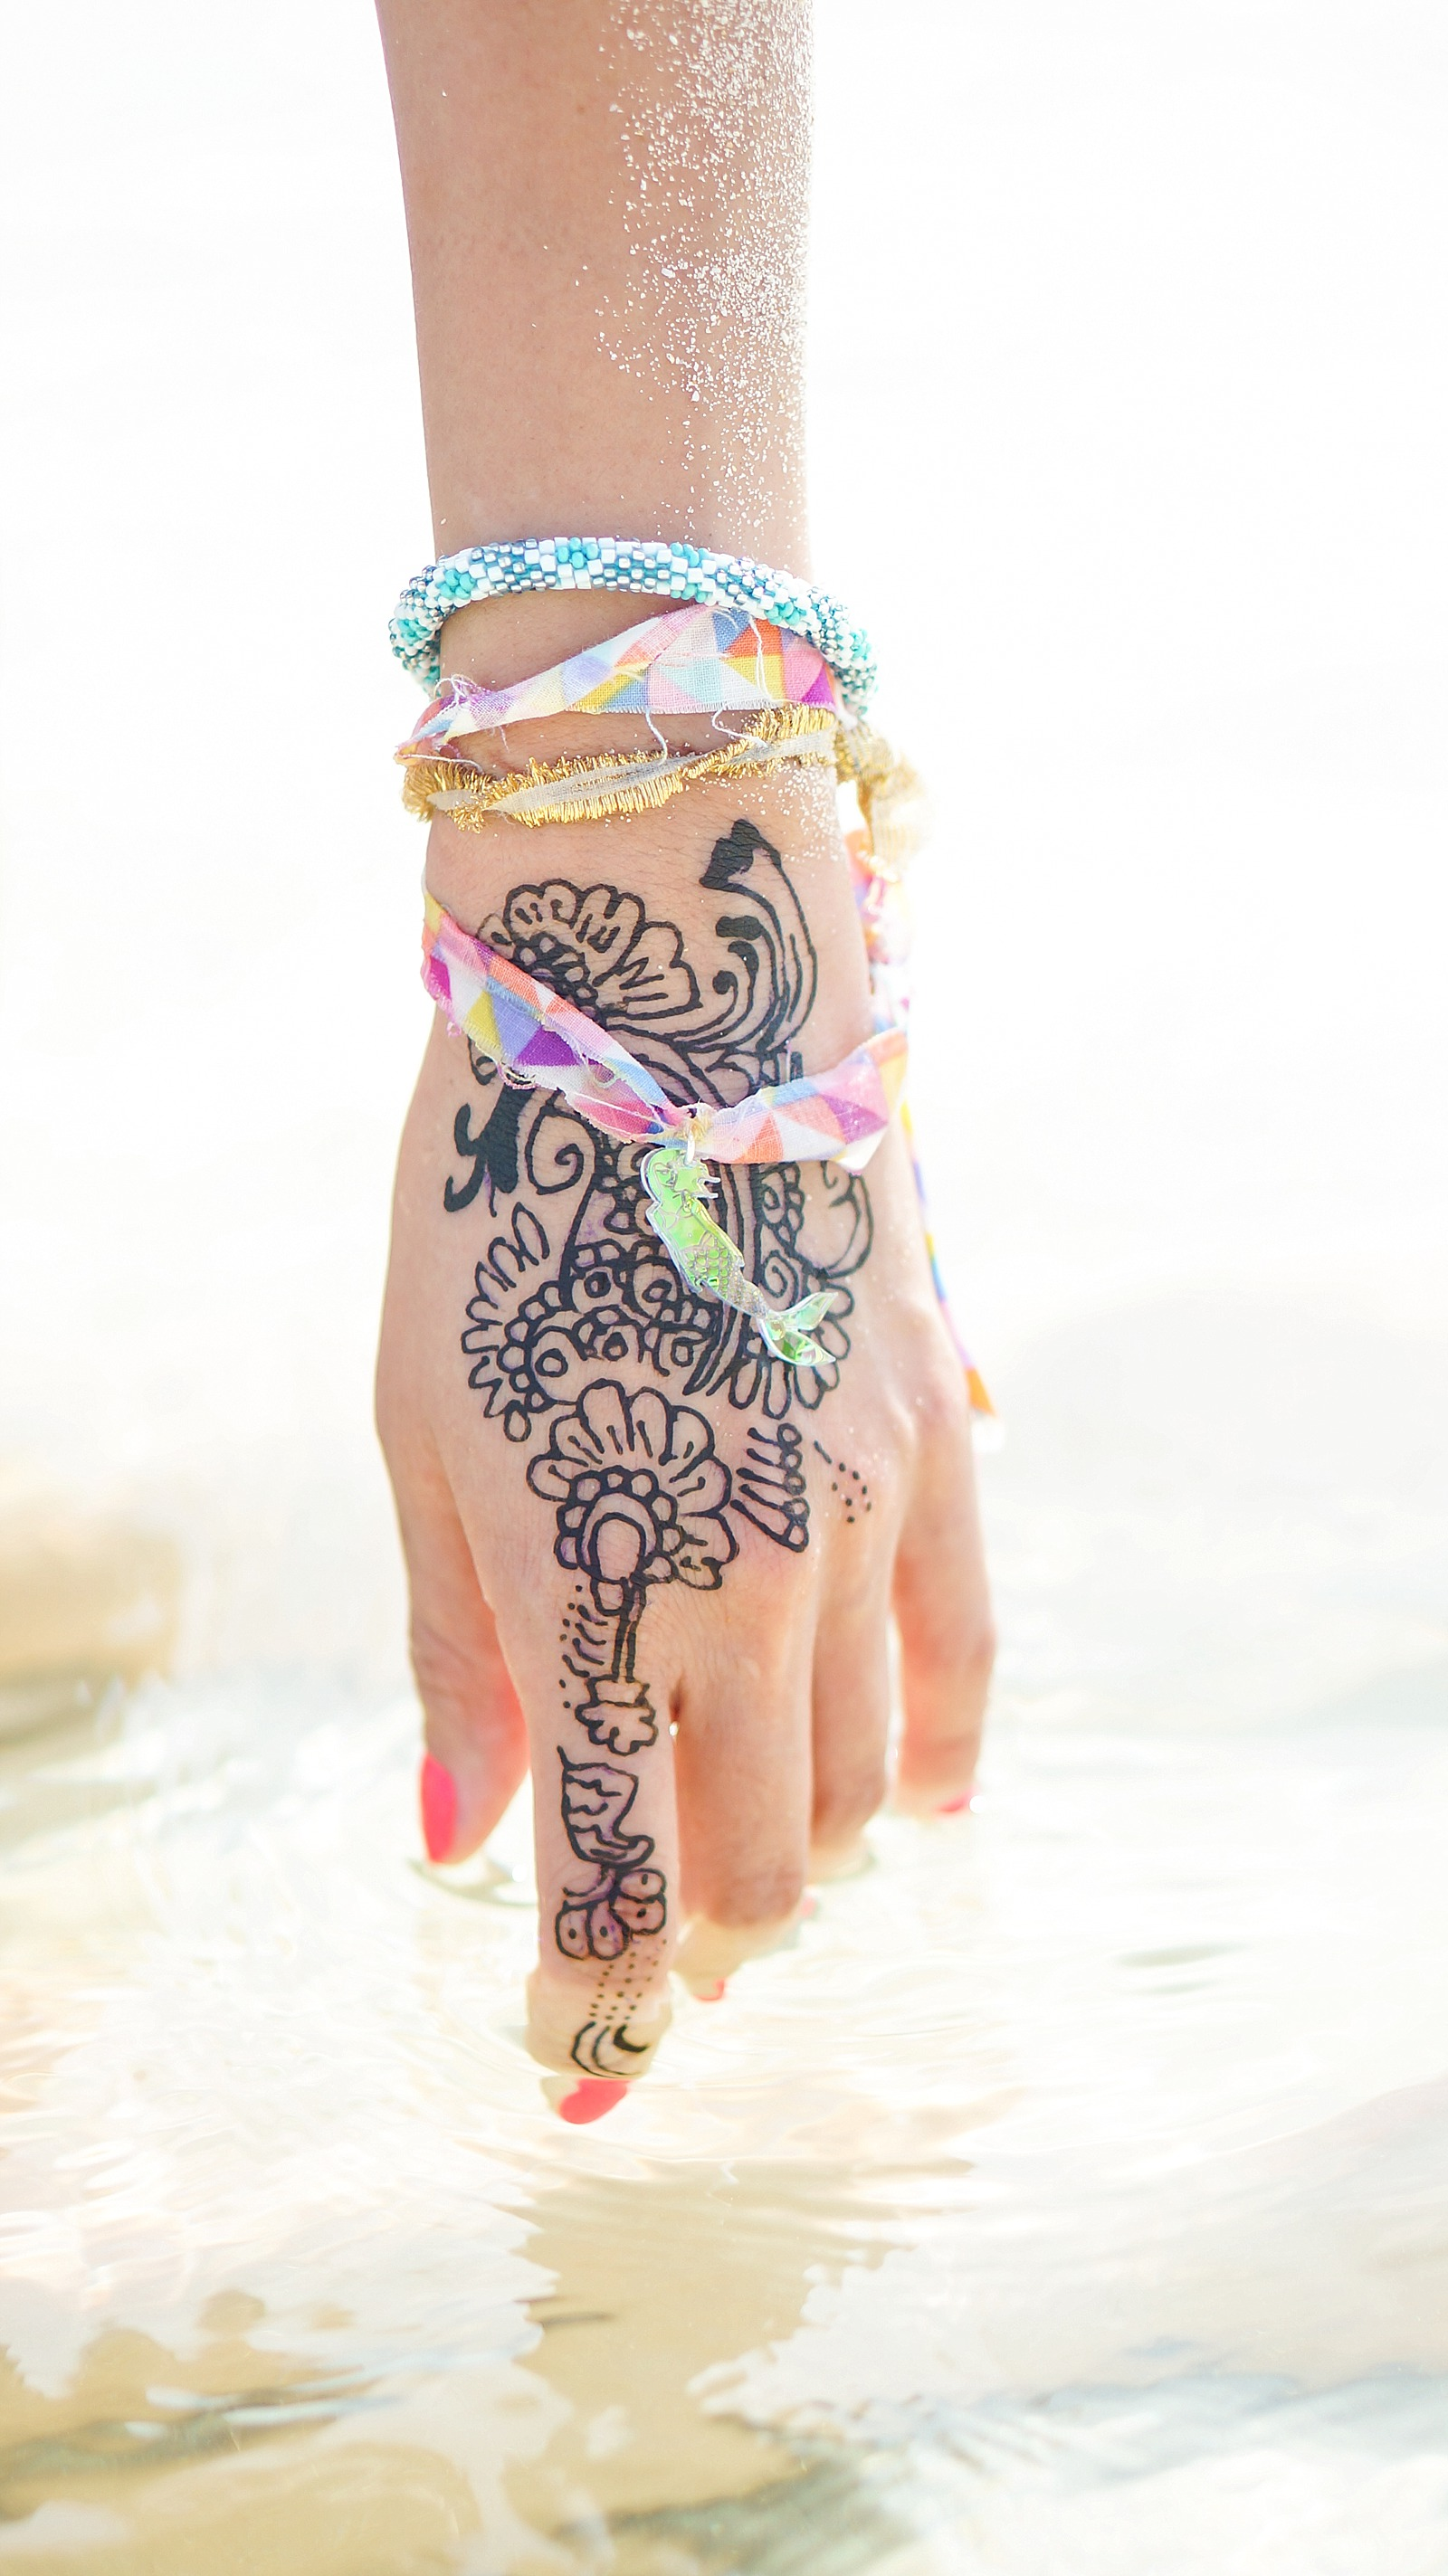 Hand in water covered in henna tattoo and mermaid bracelet floating in water in Thailand phi phi islands